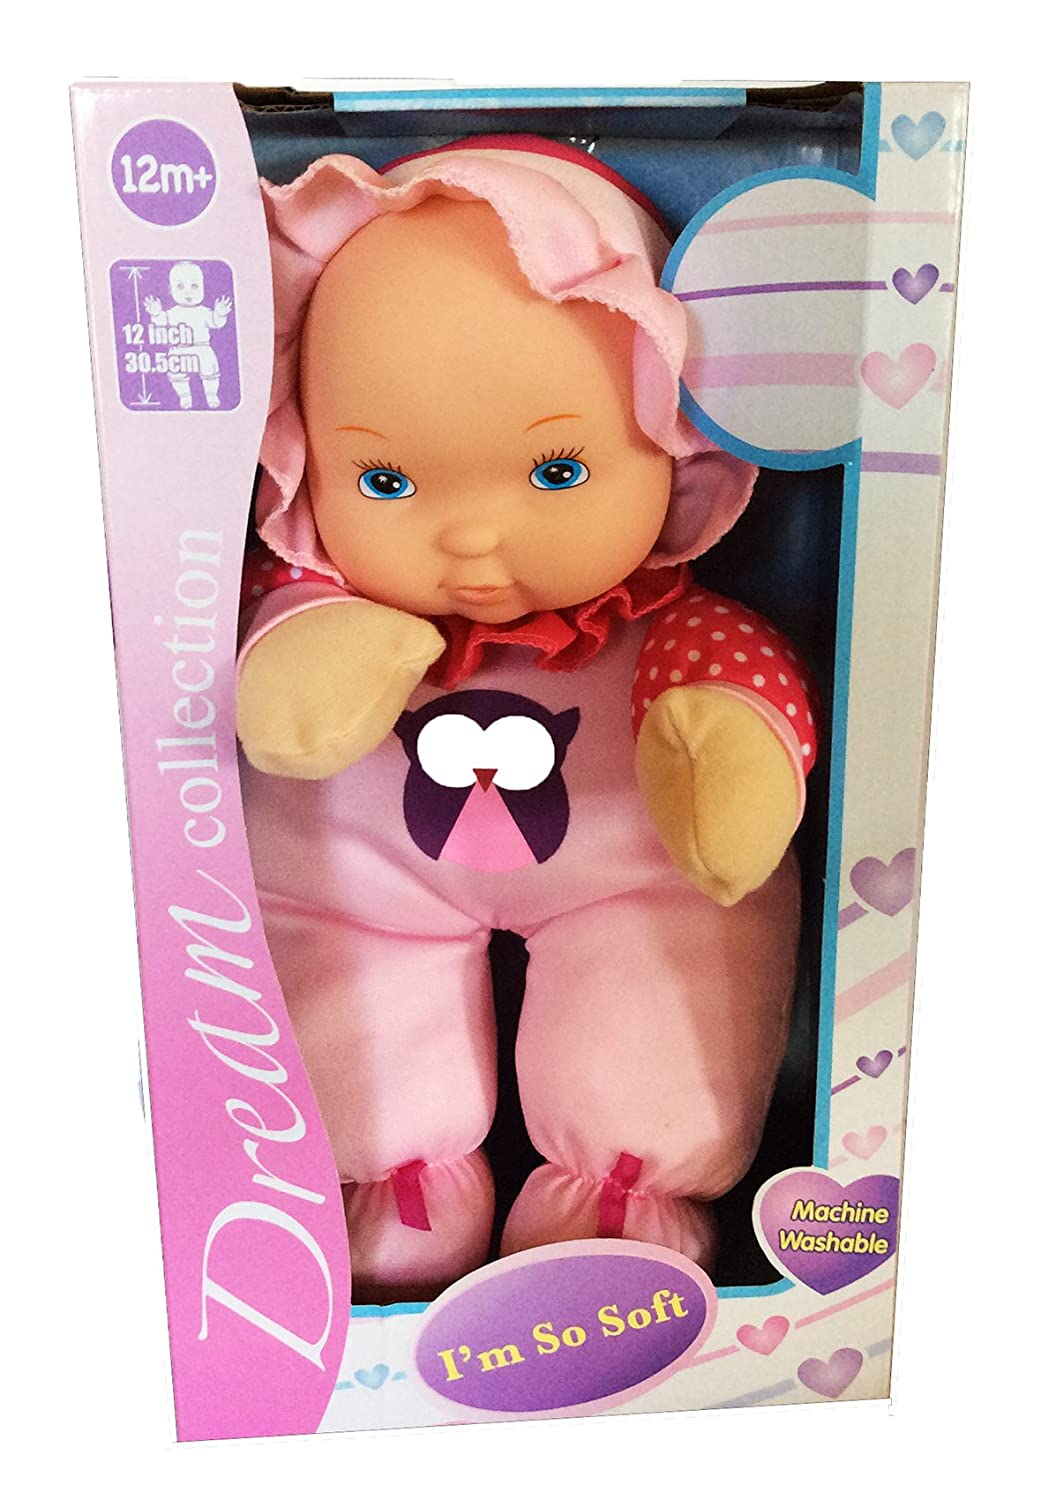 Pink /& Red with Owl Dream collection Im so Soft Machine Washable 12 inch Doll